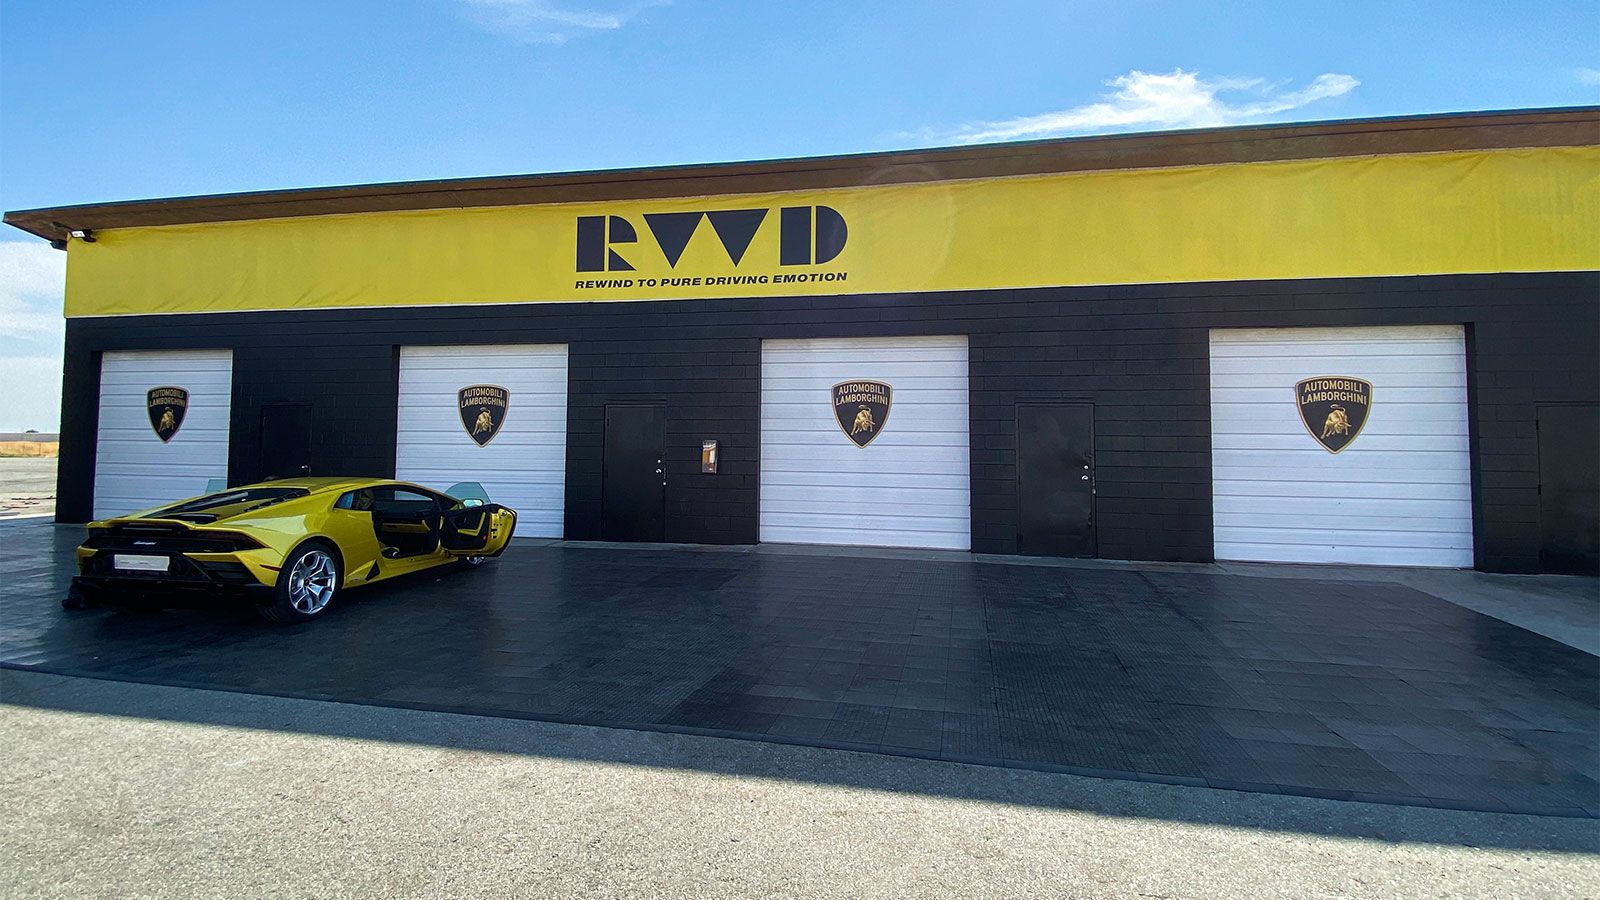 Lamborghini banners and signs